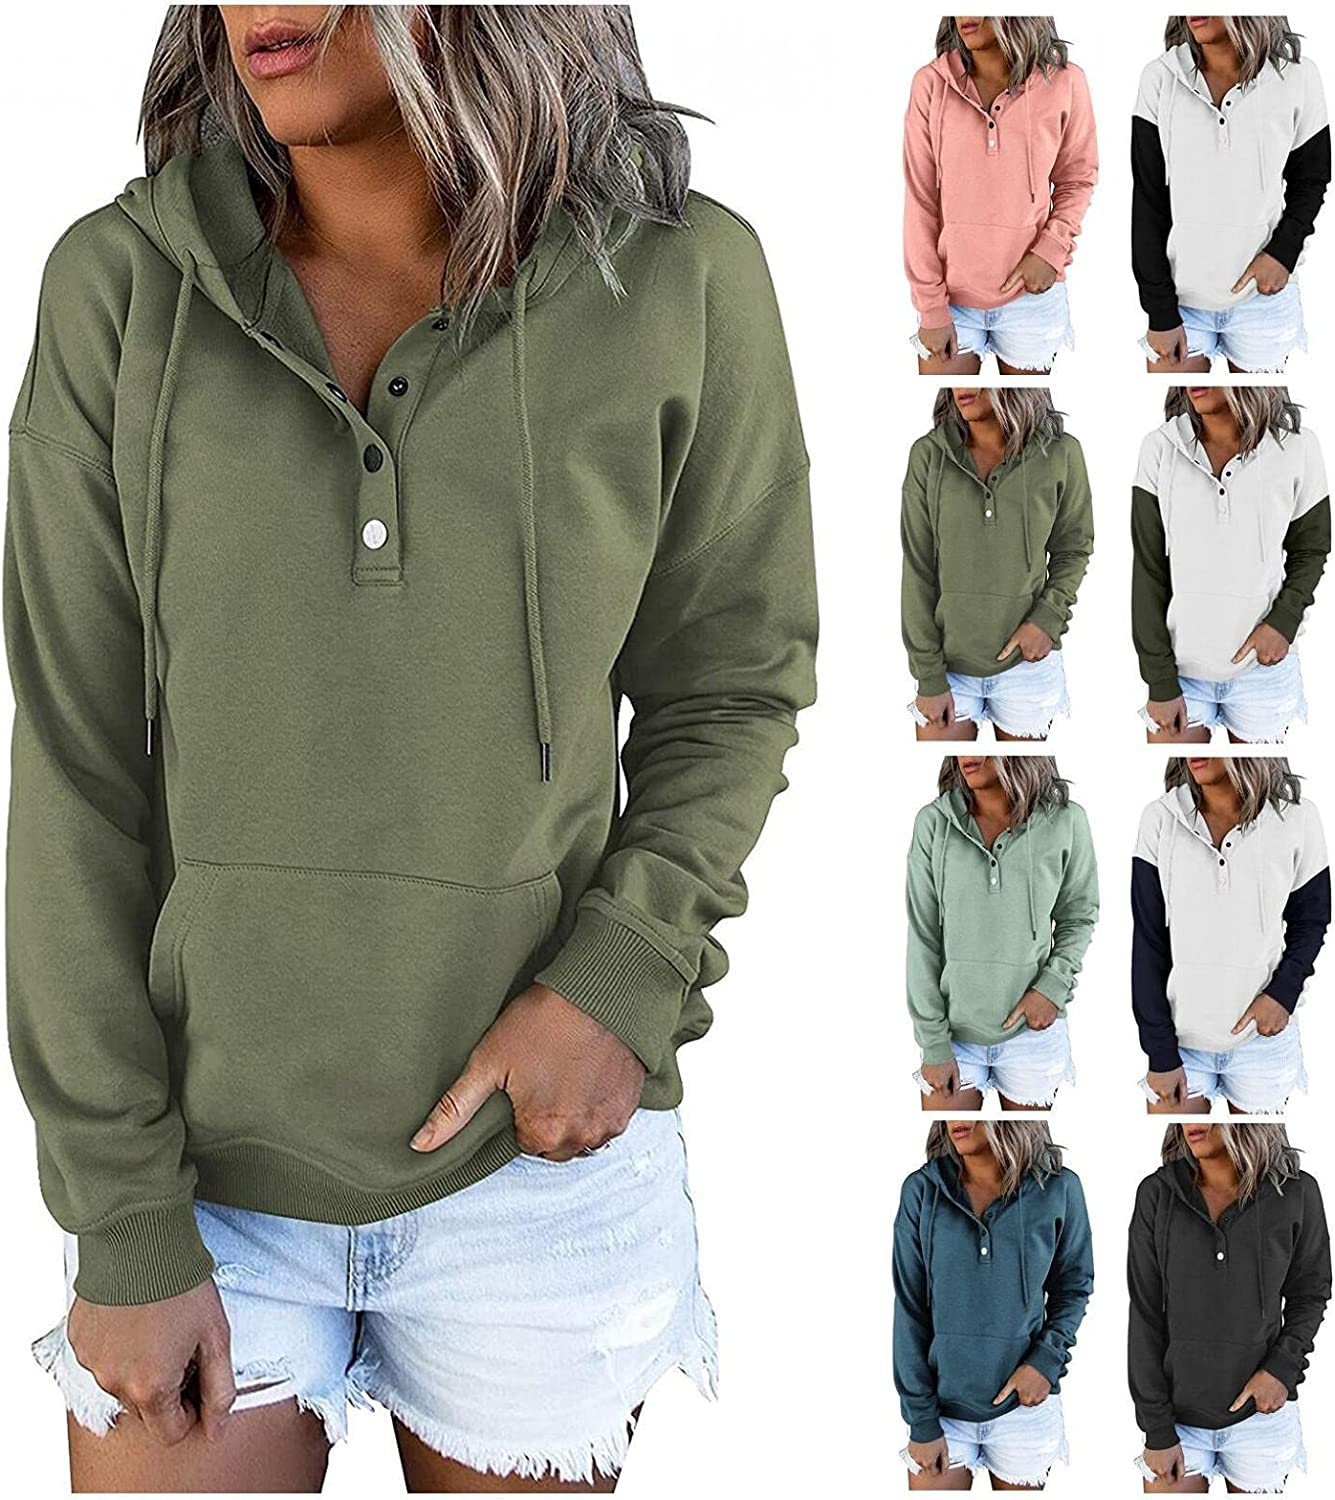 Haheyrte Hoodies for Women Button Down Color Block Long Sleeve Casual Sweatshirts with Pocket Pullover Tops Pullover Sweater